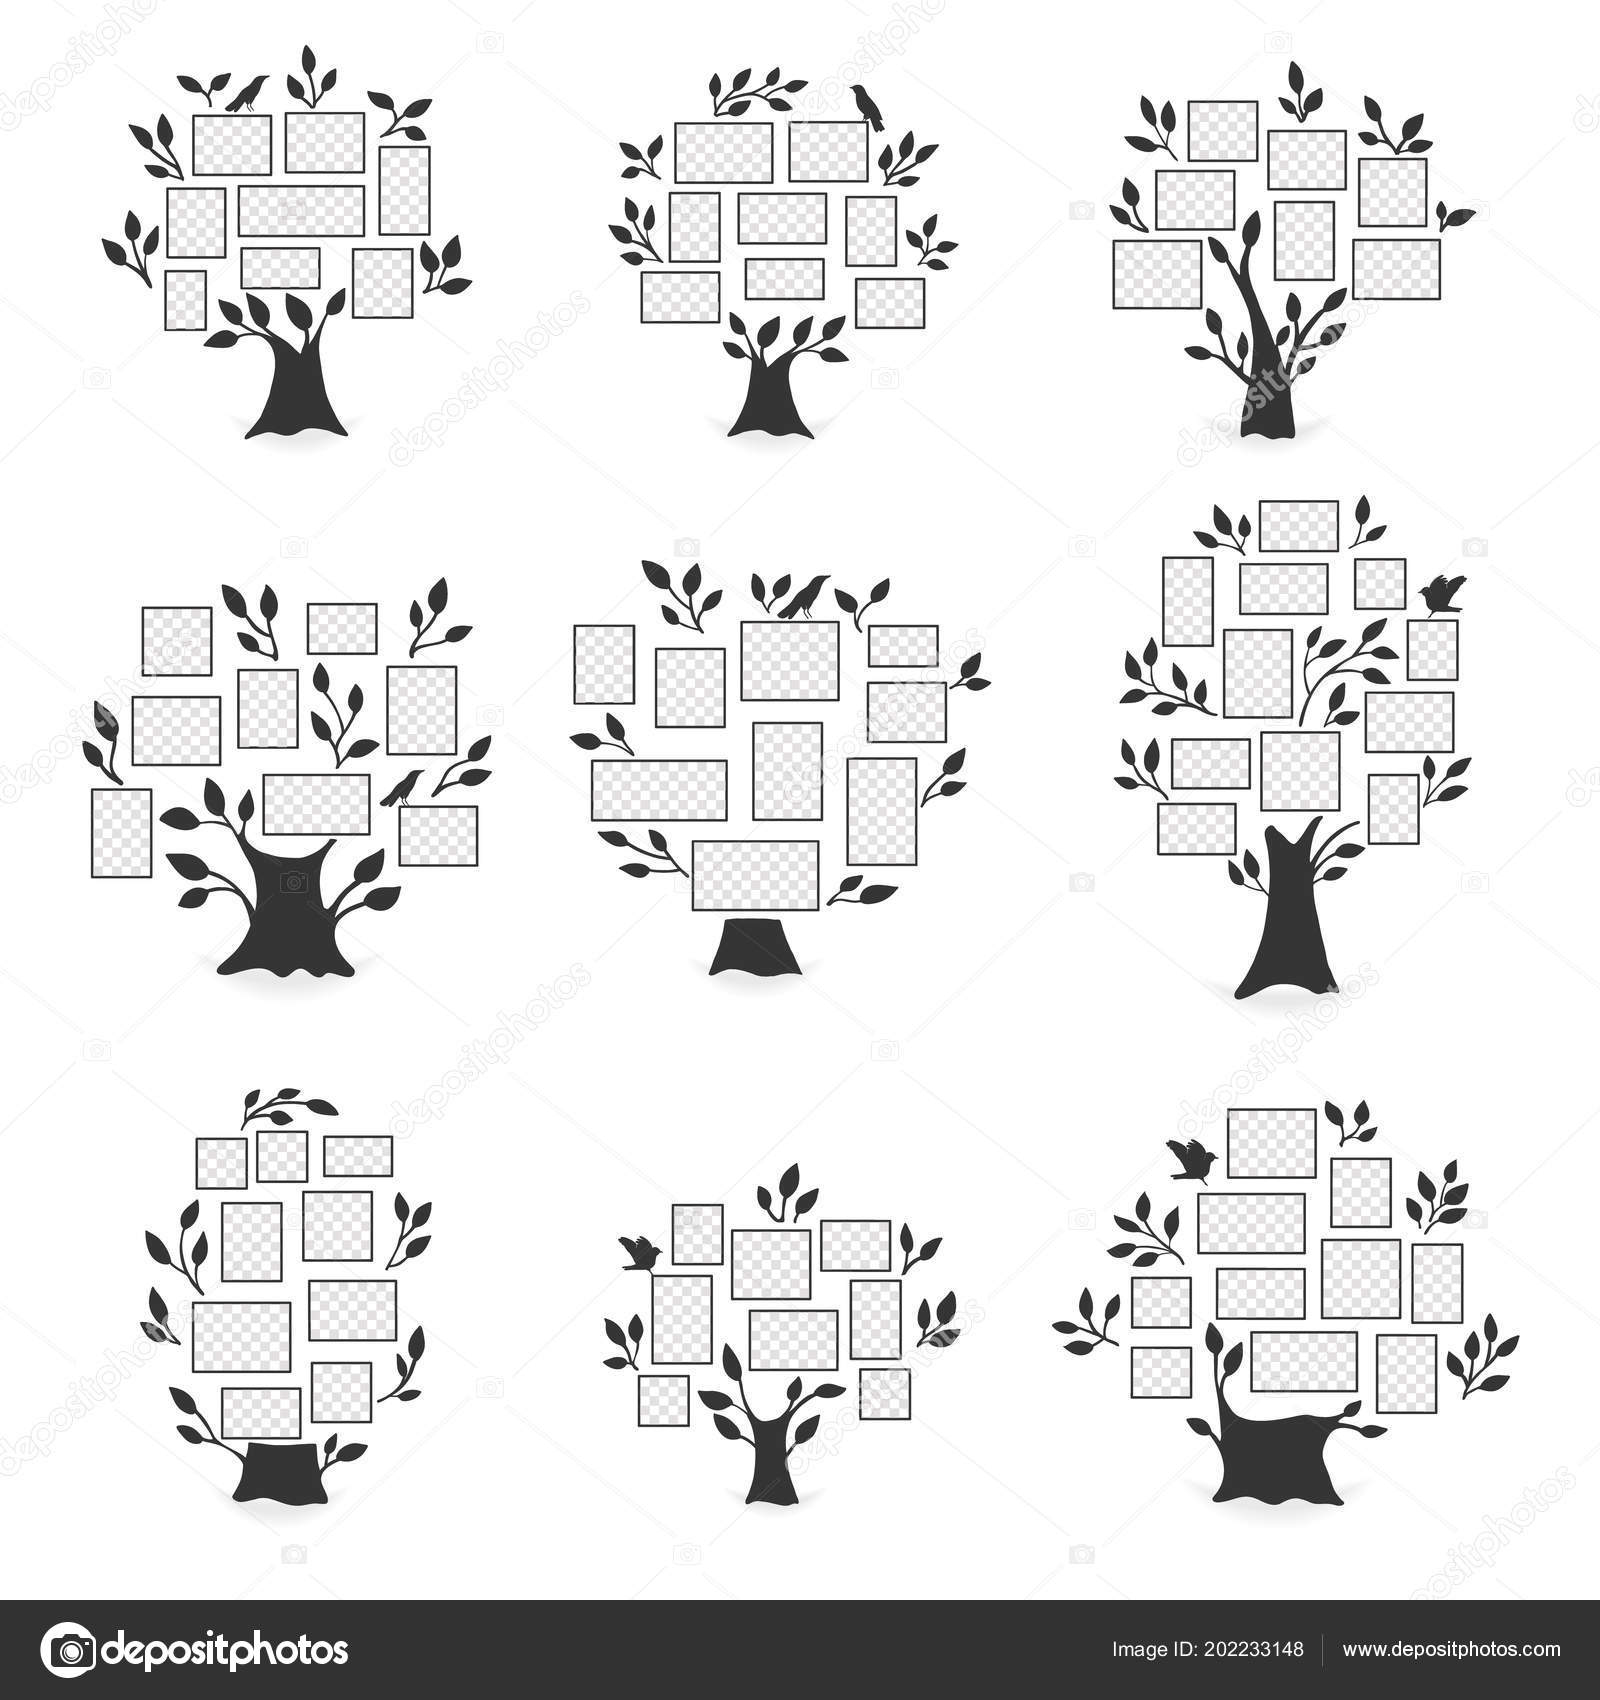 Family trees with photo frames. — Stock Vector © Liubou #202233148